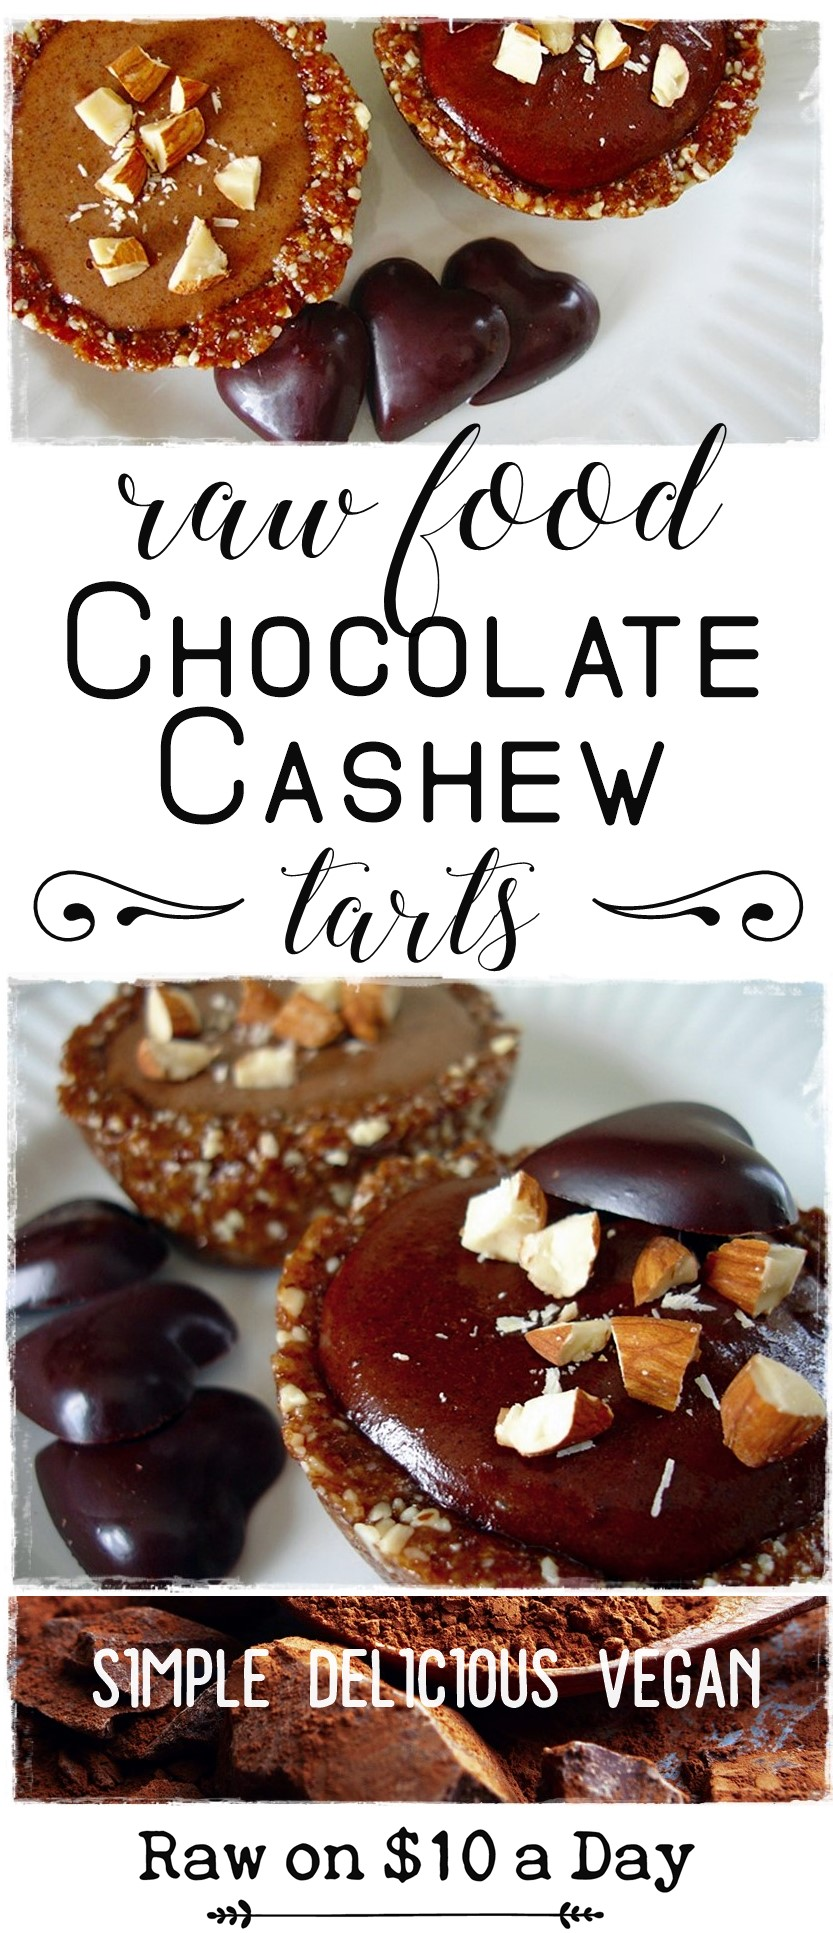 Chocolate Cashew Tart Raw on 10 Easy Raw Vegan Dessert #rawfood #rawdessert #rawchocolate #rawvegan #healthydessert #healthychocolate PIN IT